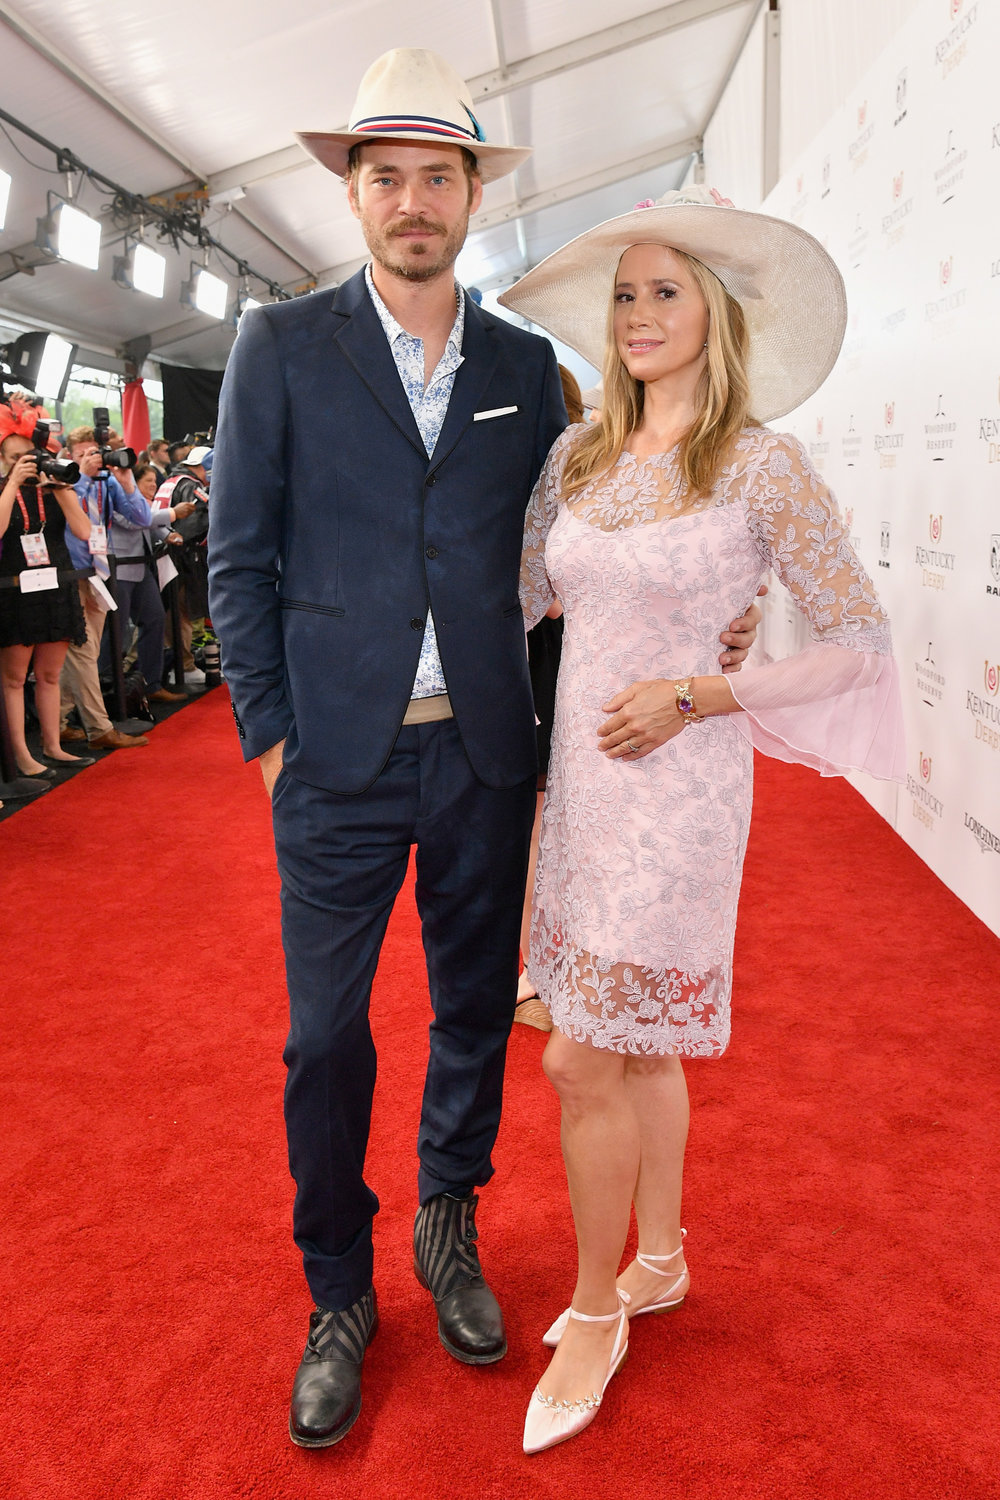 LOUISVILLE, KY - MAY 05:  Actors Christopher Backus and Mira Sorvino attend Kentucky Derby 144 on May 5, 2018 in Louisville, Kentucky.  (Photo by Dia Dipasupil/Getty Images for Chruchill Downs) *** Local Caption *** Christopher Backus;Mira Sorvino